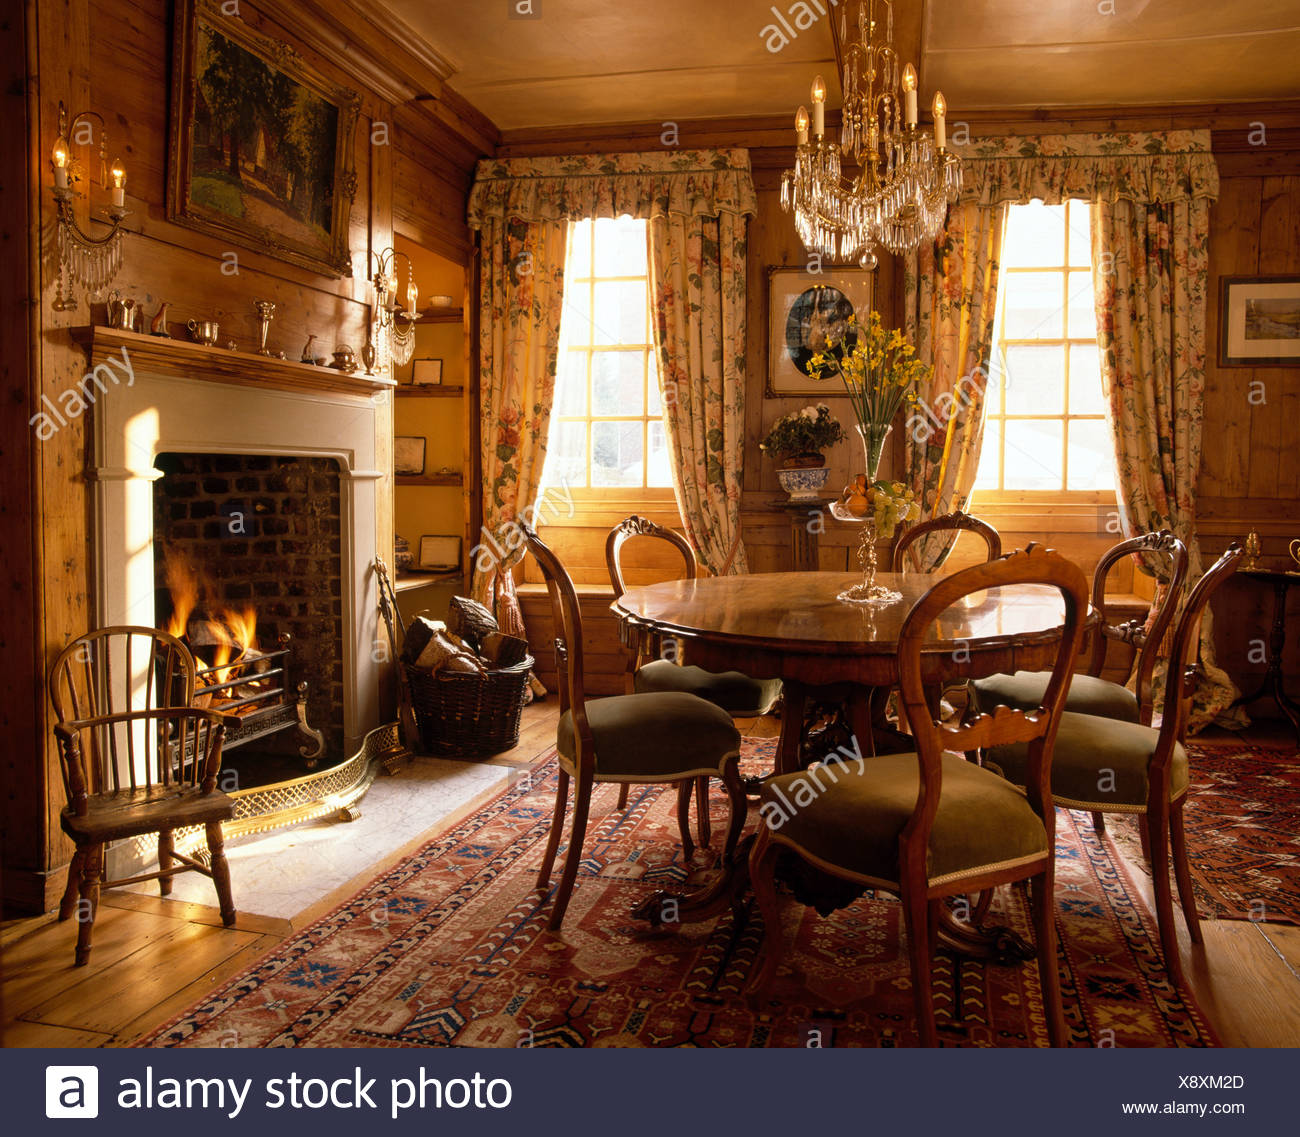 Circular Antique Table With Upholstered Chairs In Diningroom With Fireplace  And Rugs On Polished Floorboards